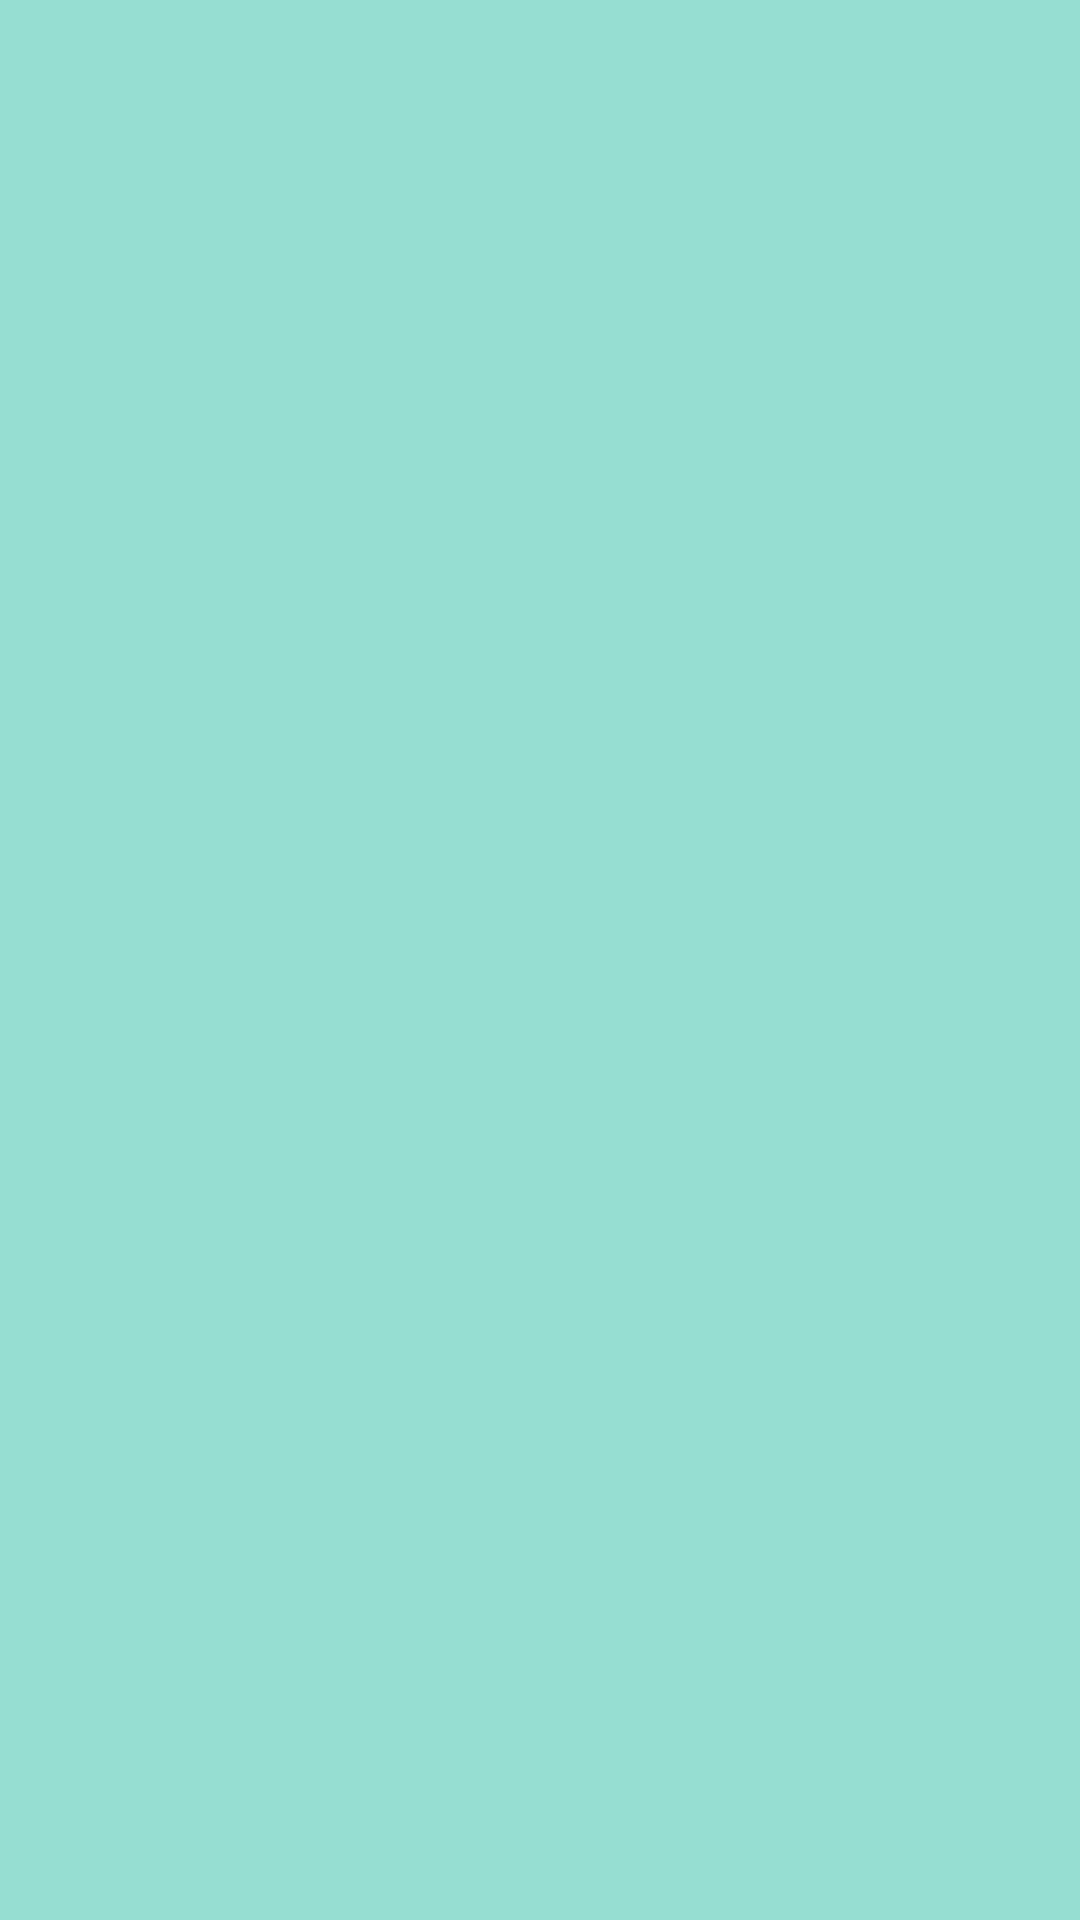 1080x1920 Pale Robin Egg Blue Solid Color Background